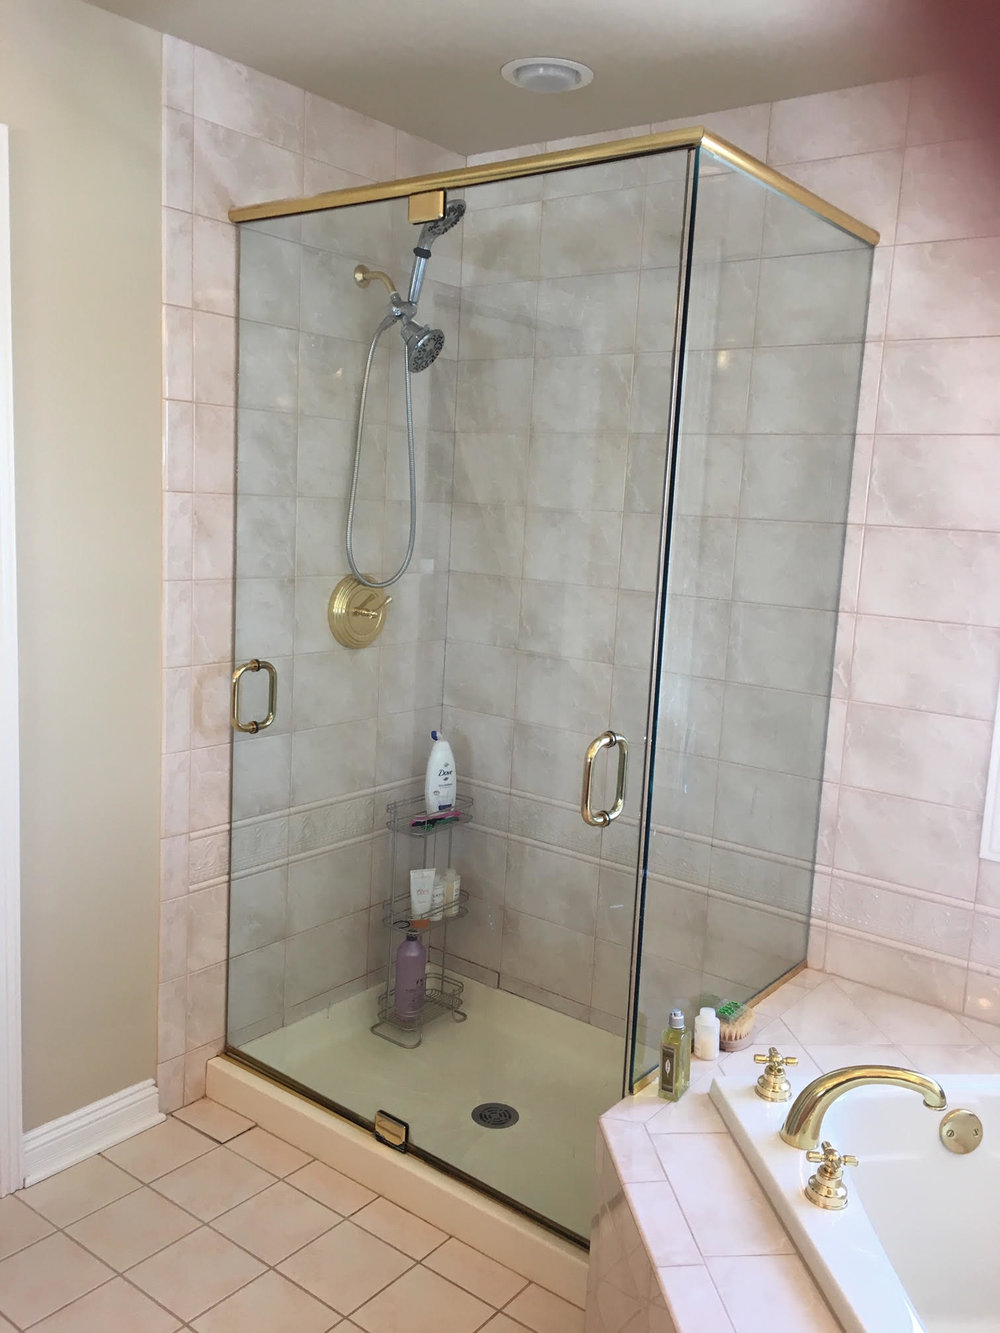 Outdated Shower in St. Charles IL. Bathroom Remodel- BEFORE.jpg